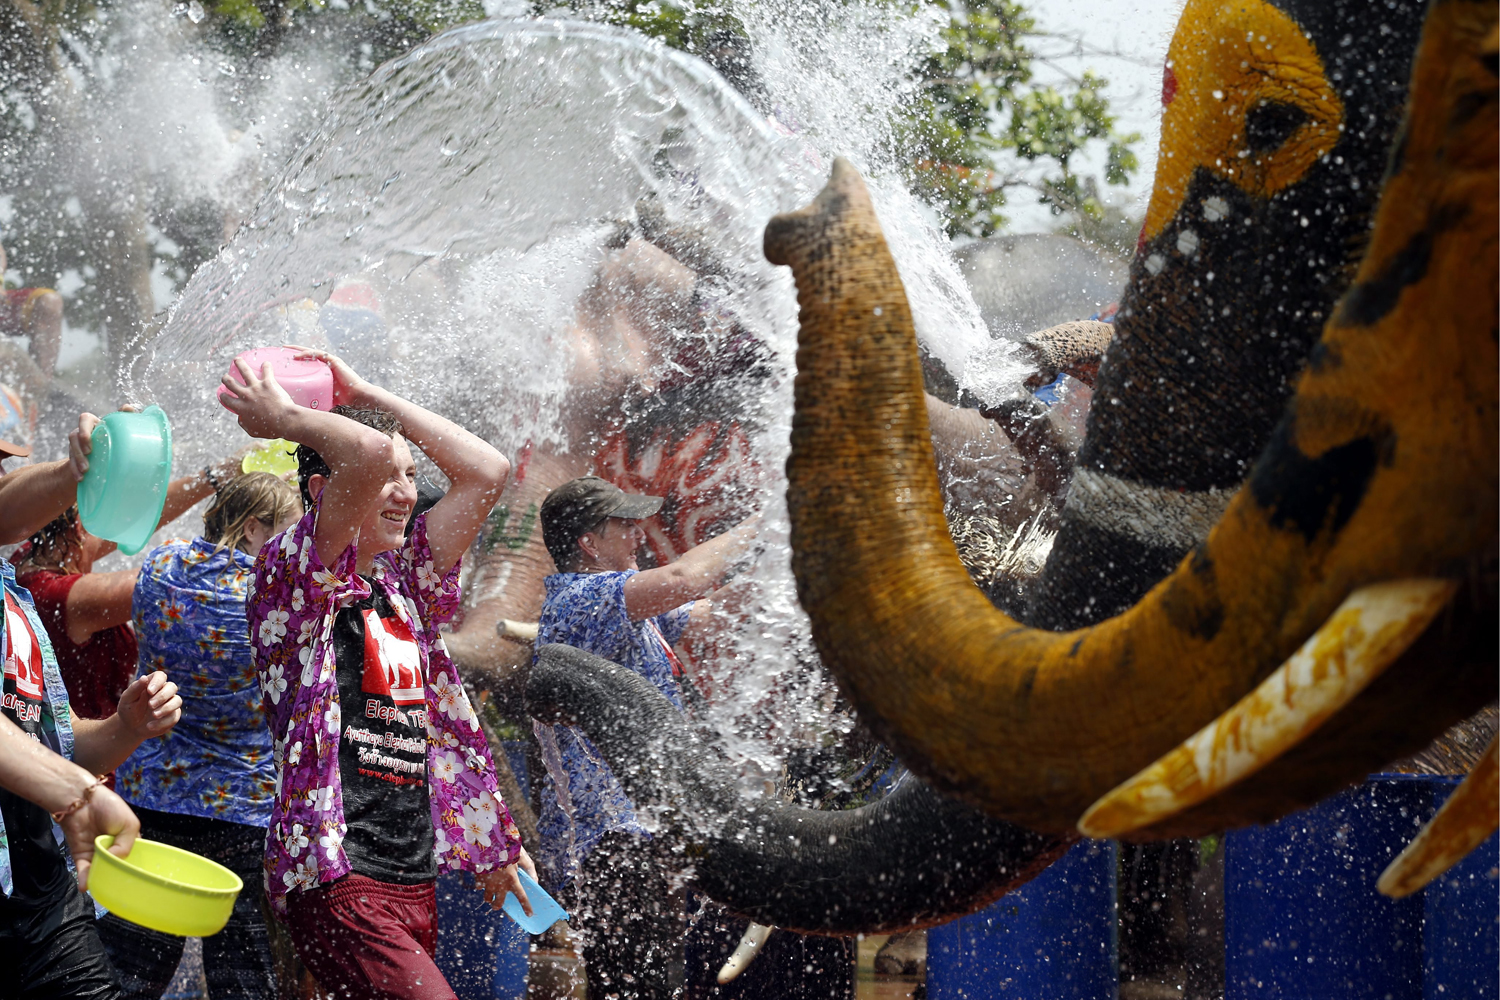 Apr. 9, 2014. Foreigners get sprayed with water from elephants to preview the upcoming Songkran Festival celebration, the Thai traditional New Year, also known as the water festival at the ancient world heritage city of Ayutthaya, Thailand.